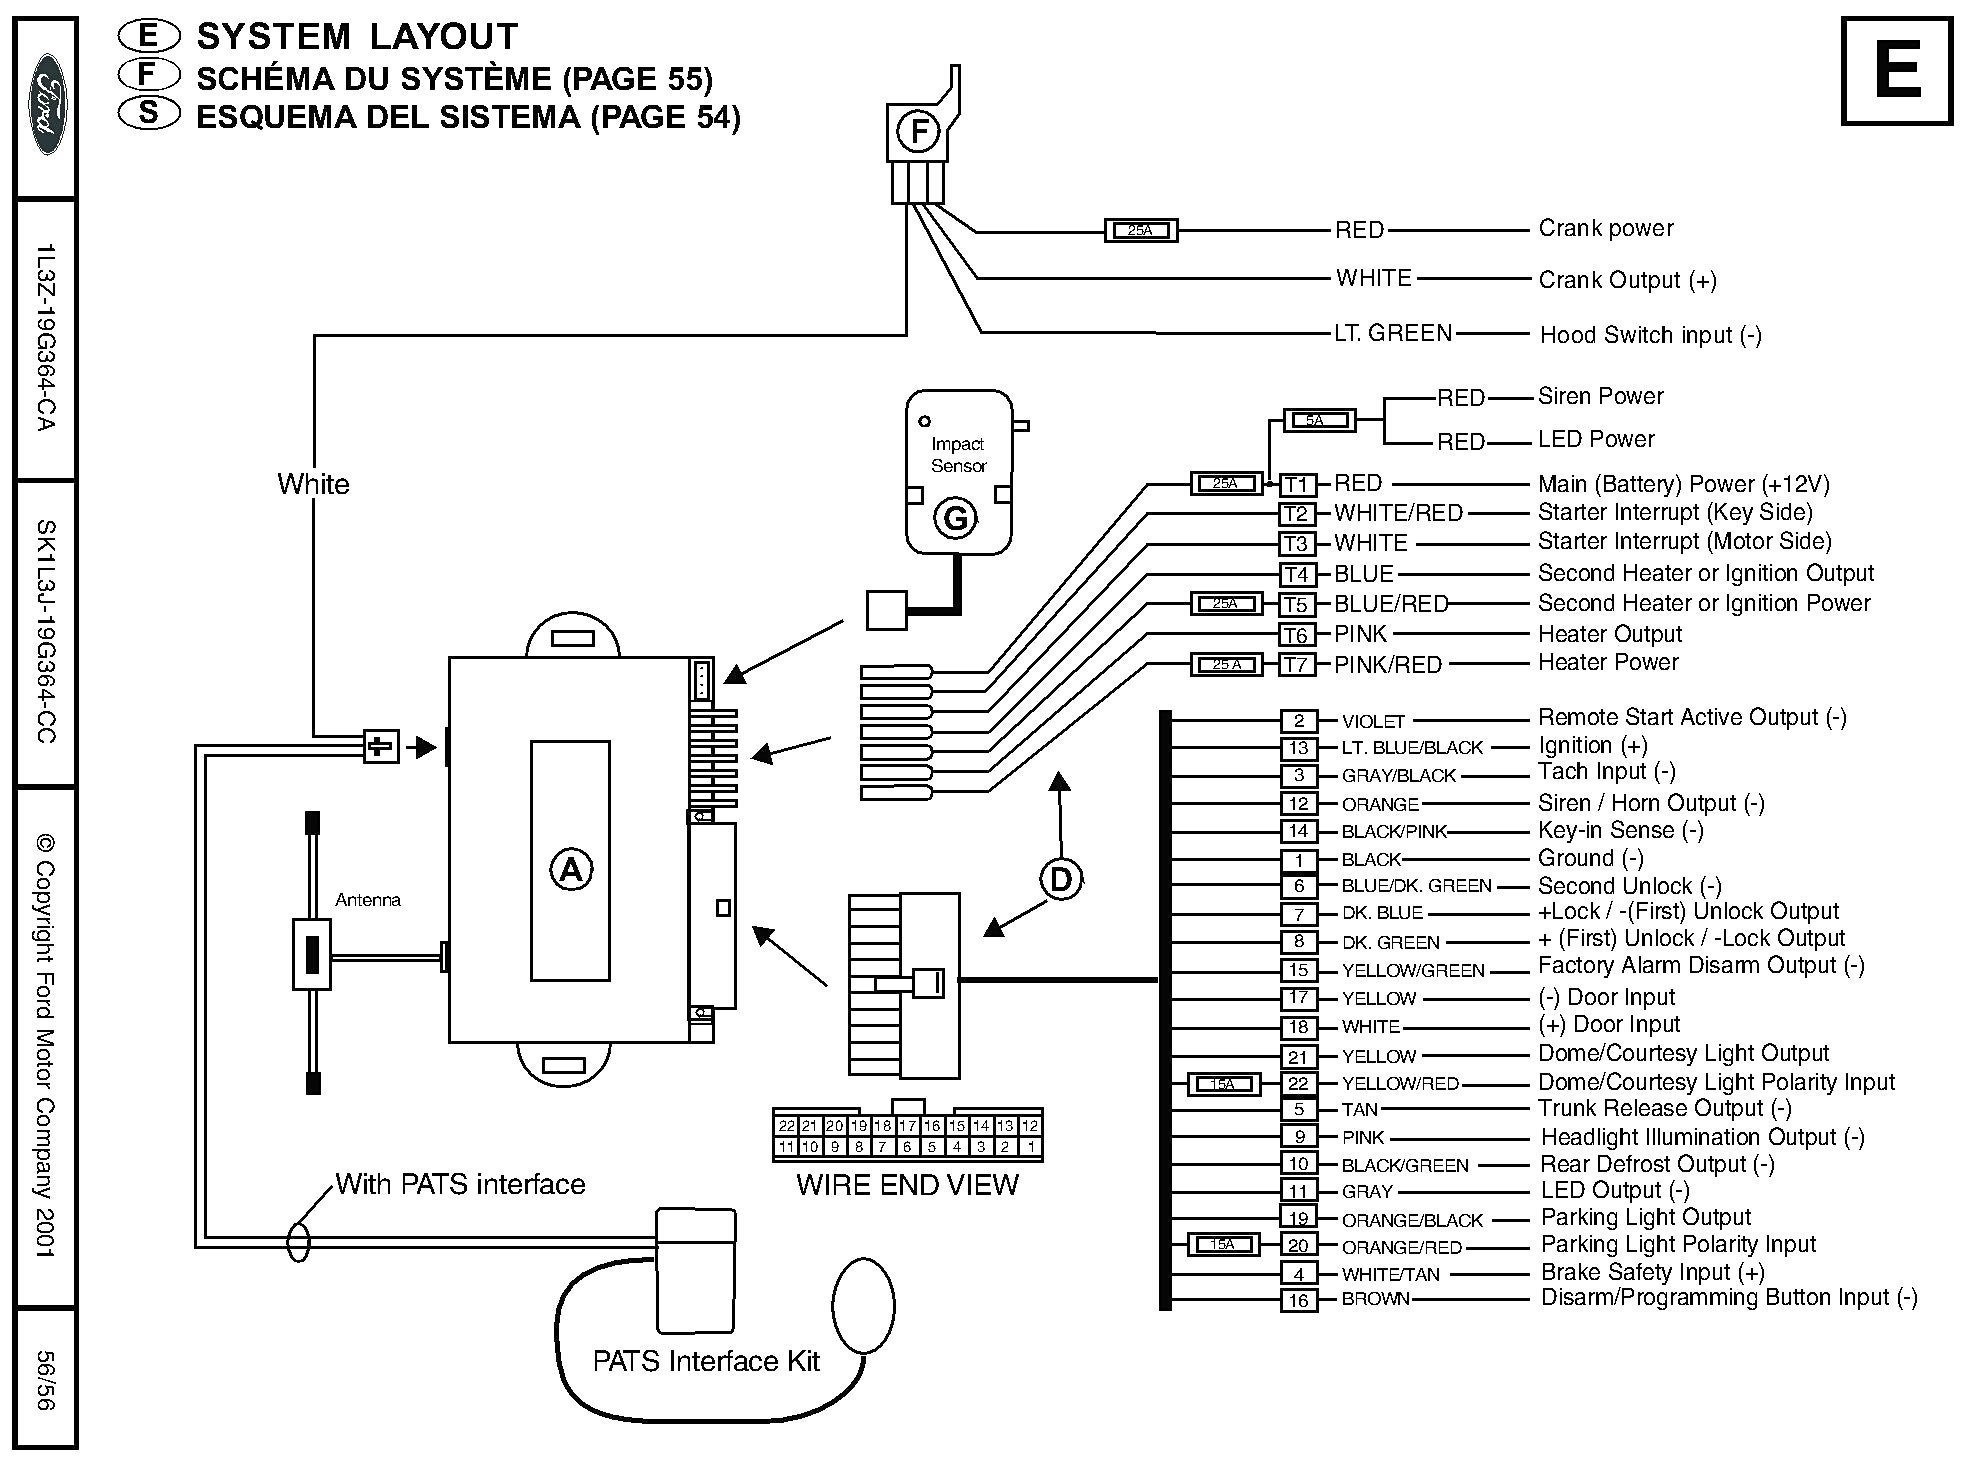 Viper 5706 Wiring Diagram Vy 1903] Wiring Diagram In Addition Viper Remote Start